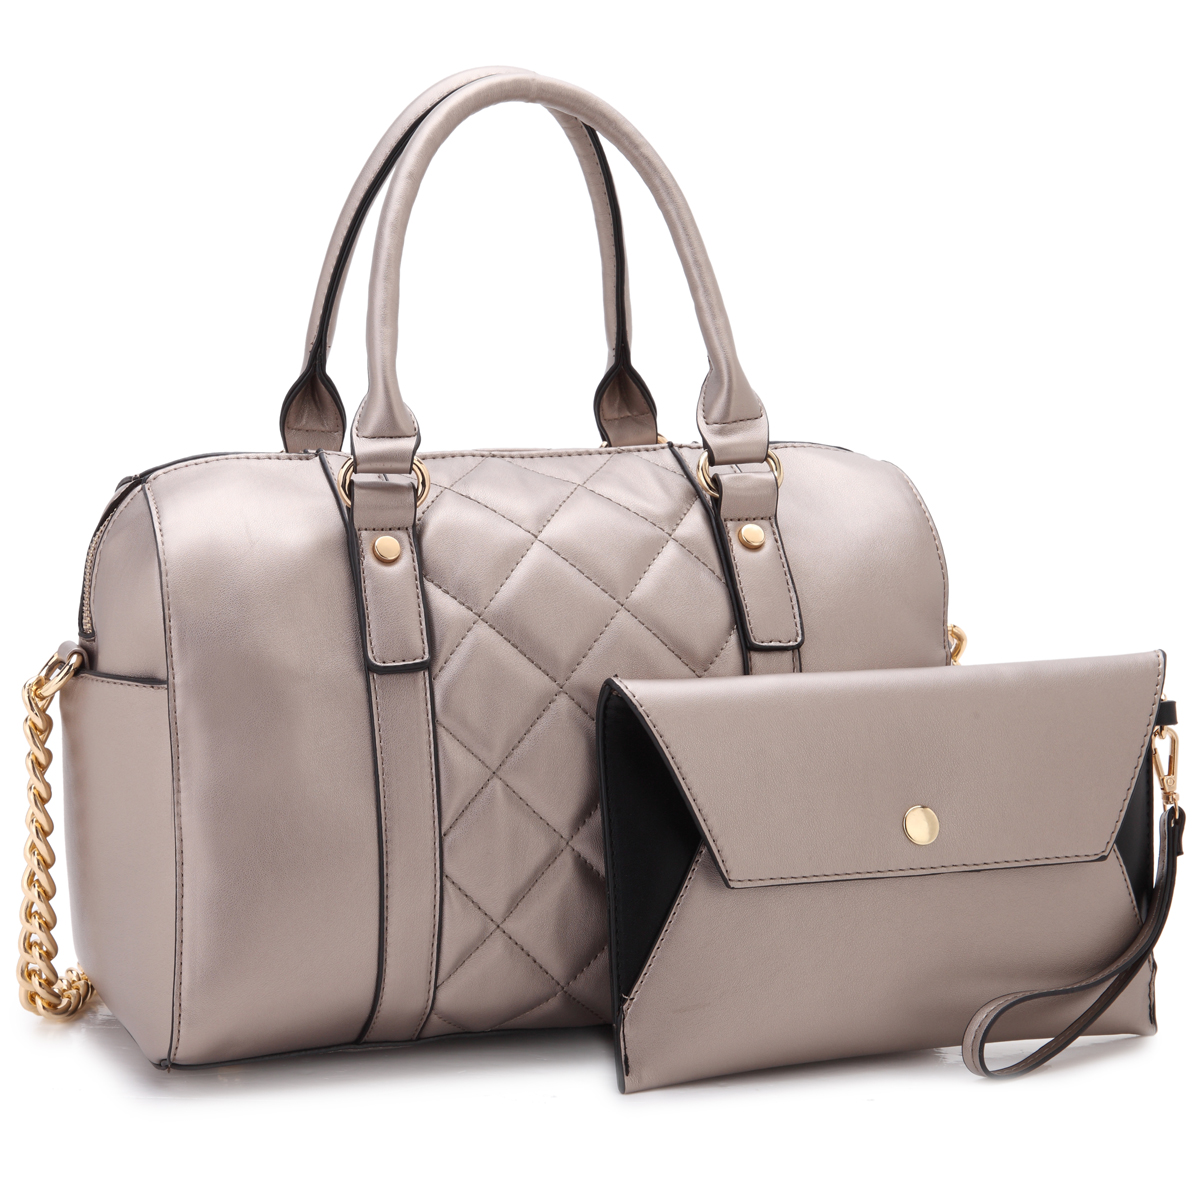 Dasein Leather Satchel, Quilted Design, and with Matching Wristlet